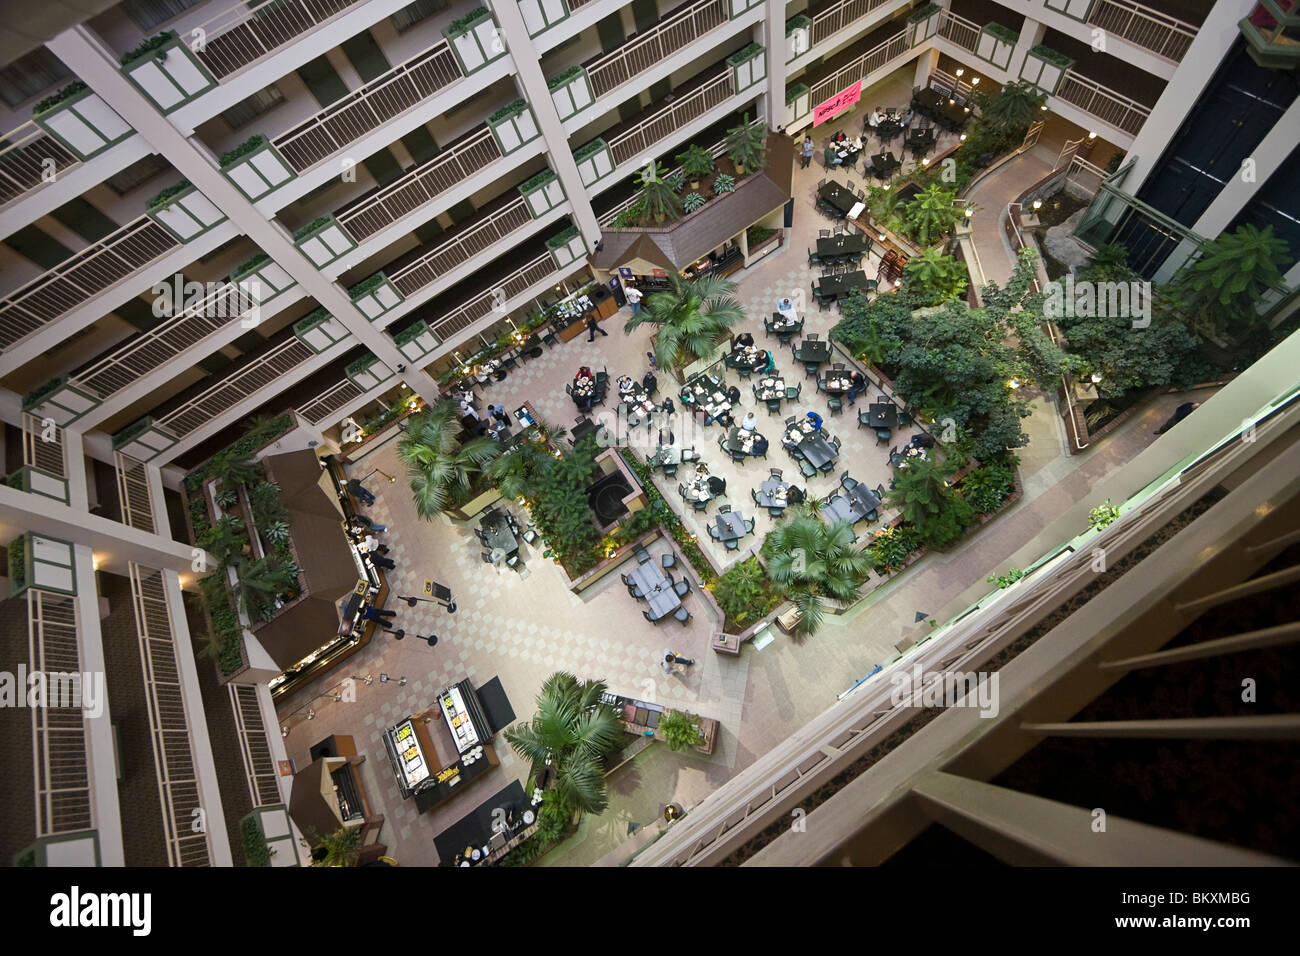 Courtyard of Embassy Suites Hotel, seen from ninth floor. South Lake Tahoe, California, USA. - Stock Image